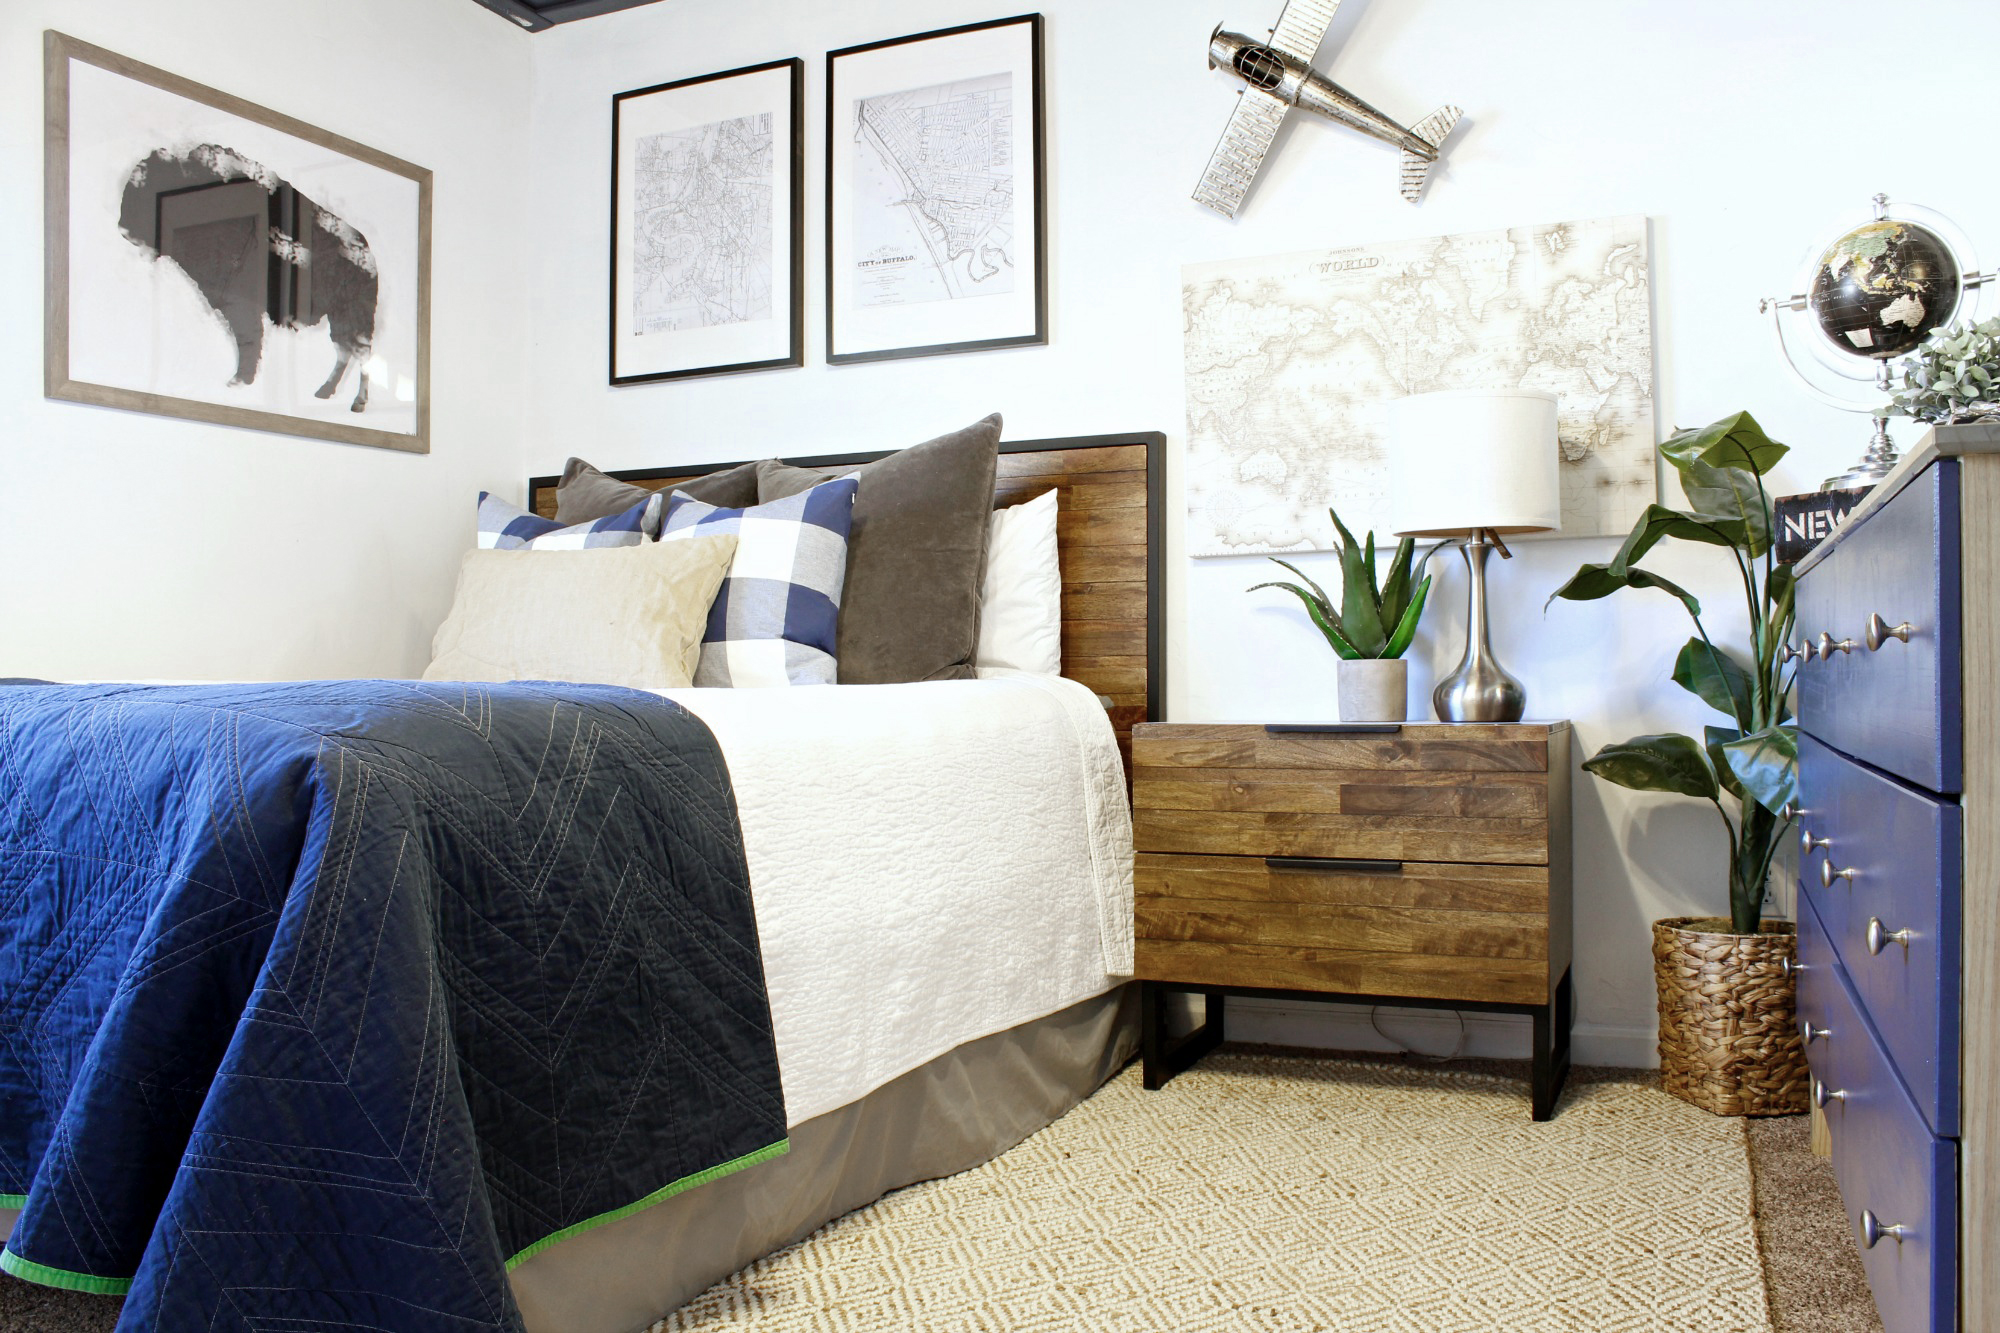 Guest Room Refresh with Pier 1 - Classy Clutter